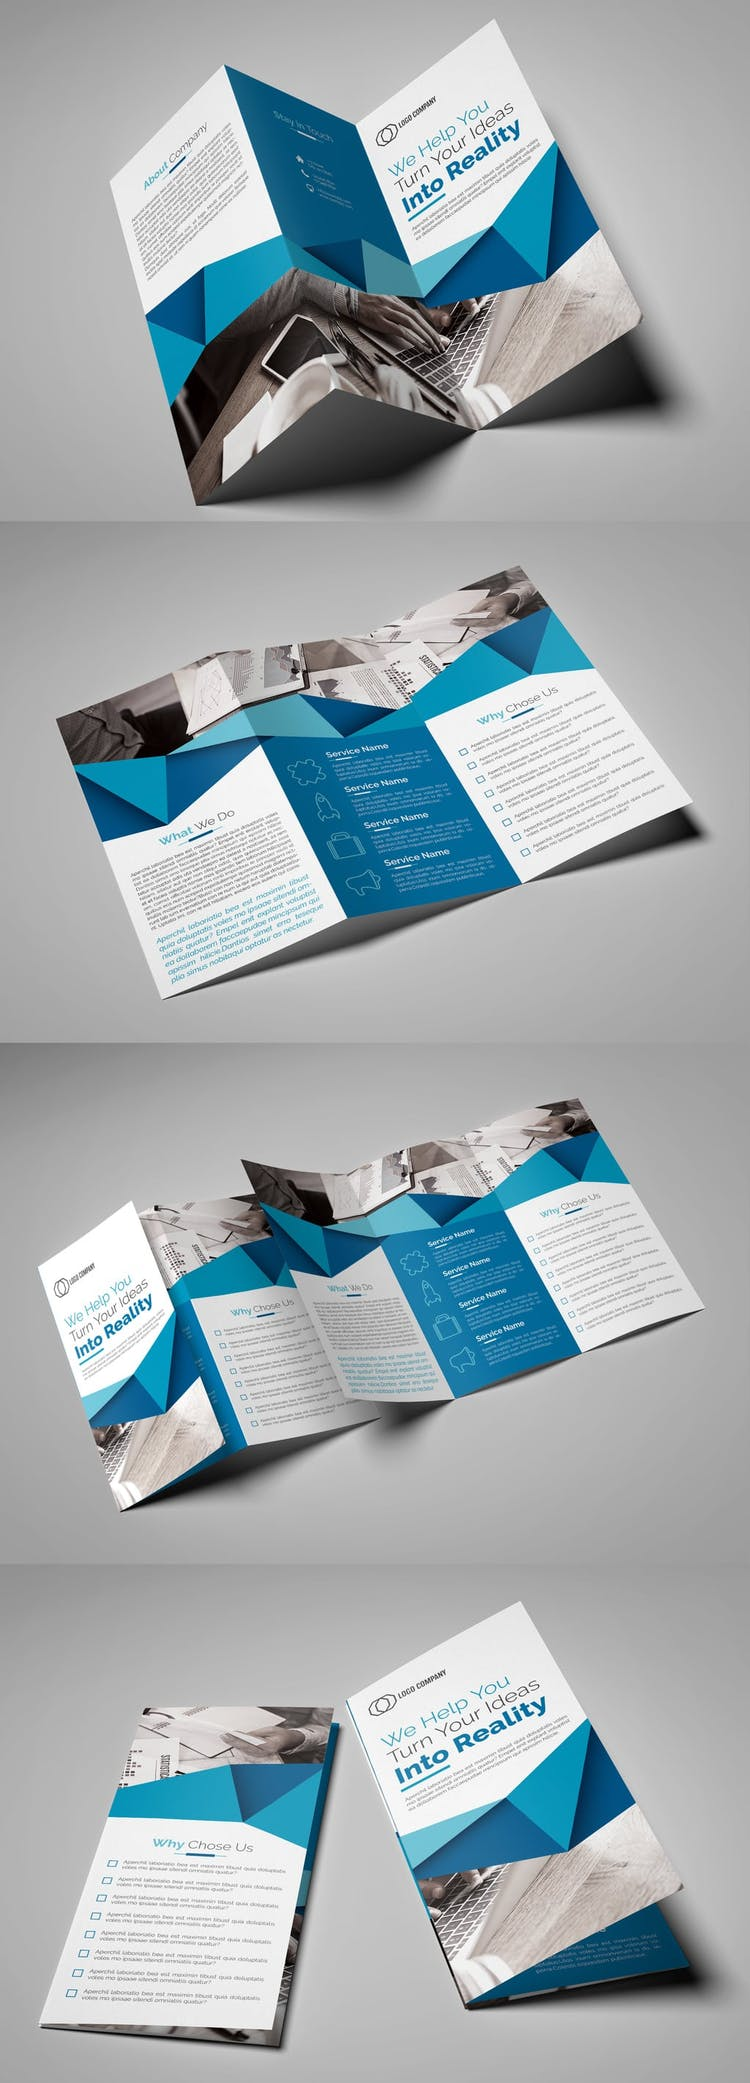 Indesign Tri Fold Brochure Template Free from redokun.imgix.net